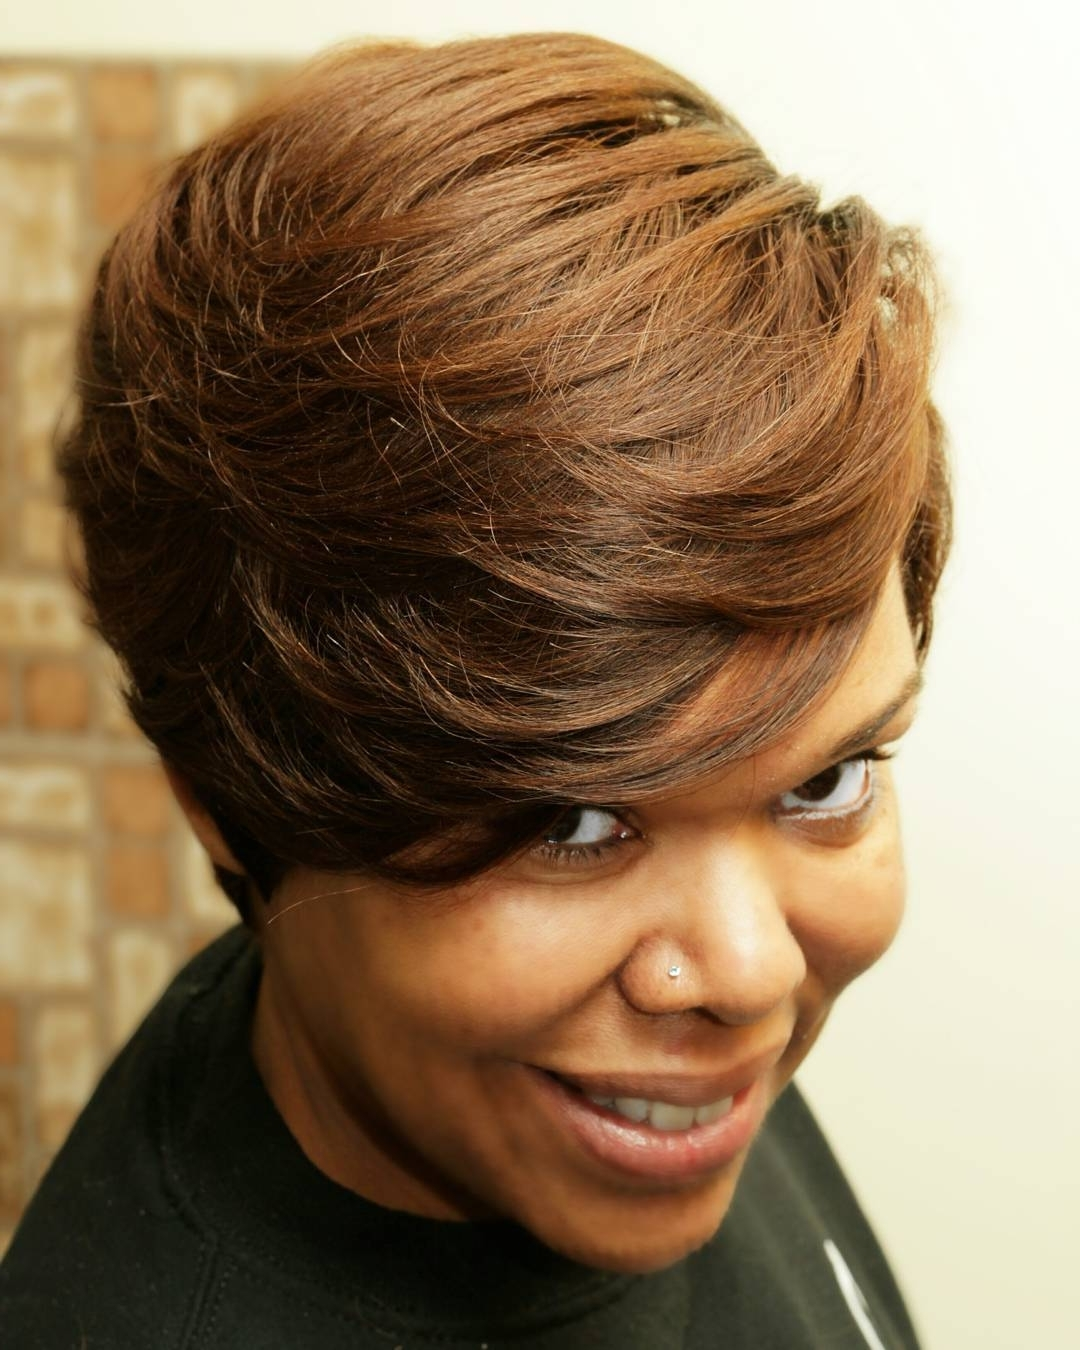 16 Quick Weave Hairstyles For Seriously Posh Women Inside Quick Weave Updo Hairstyles (View 15 of 15)